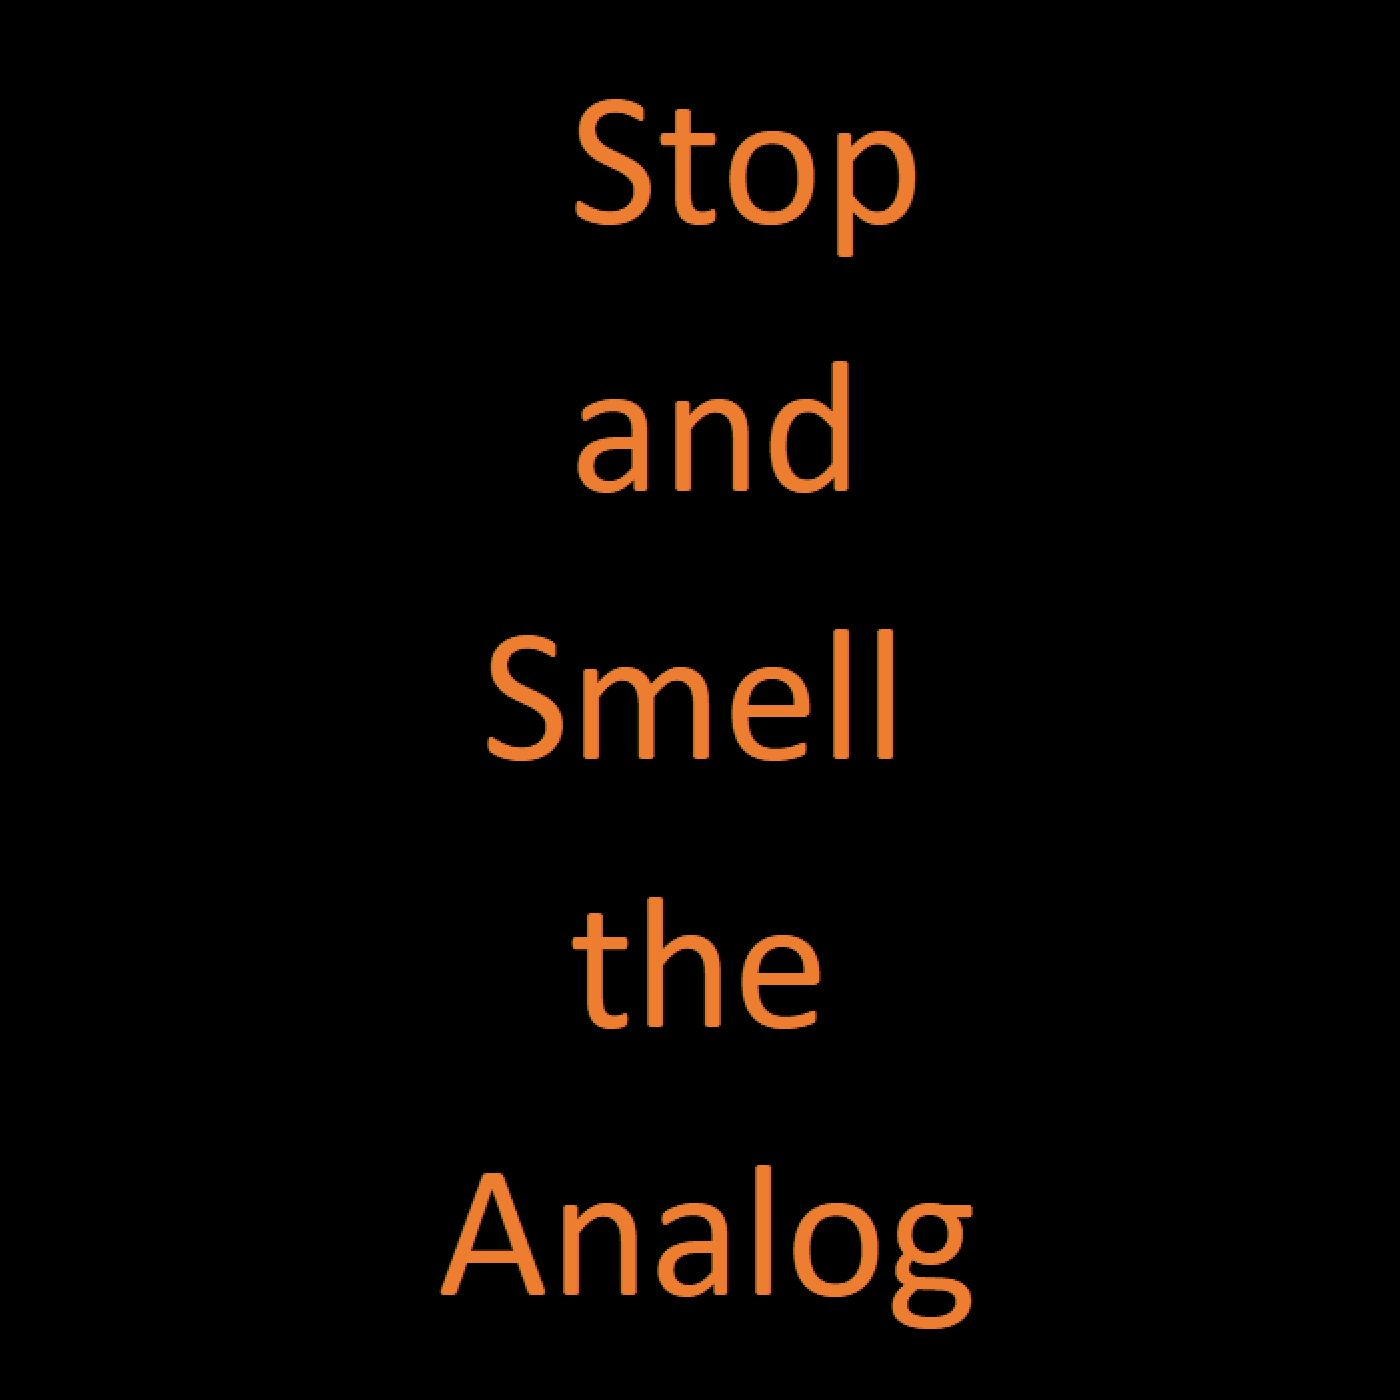 Stop and Smell the Analog